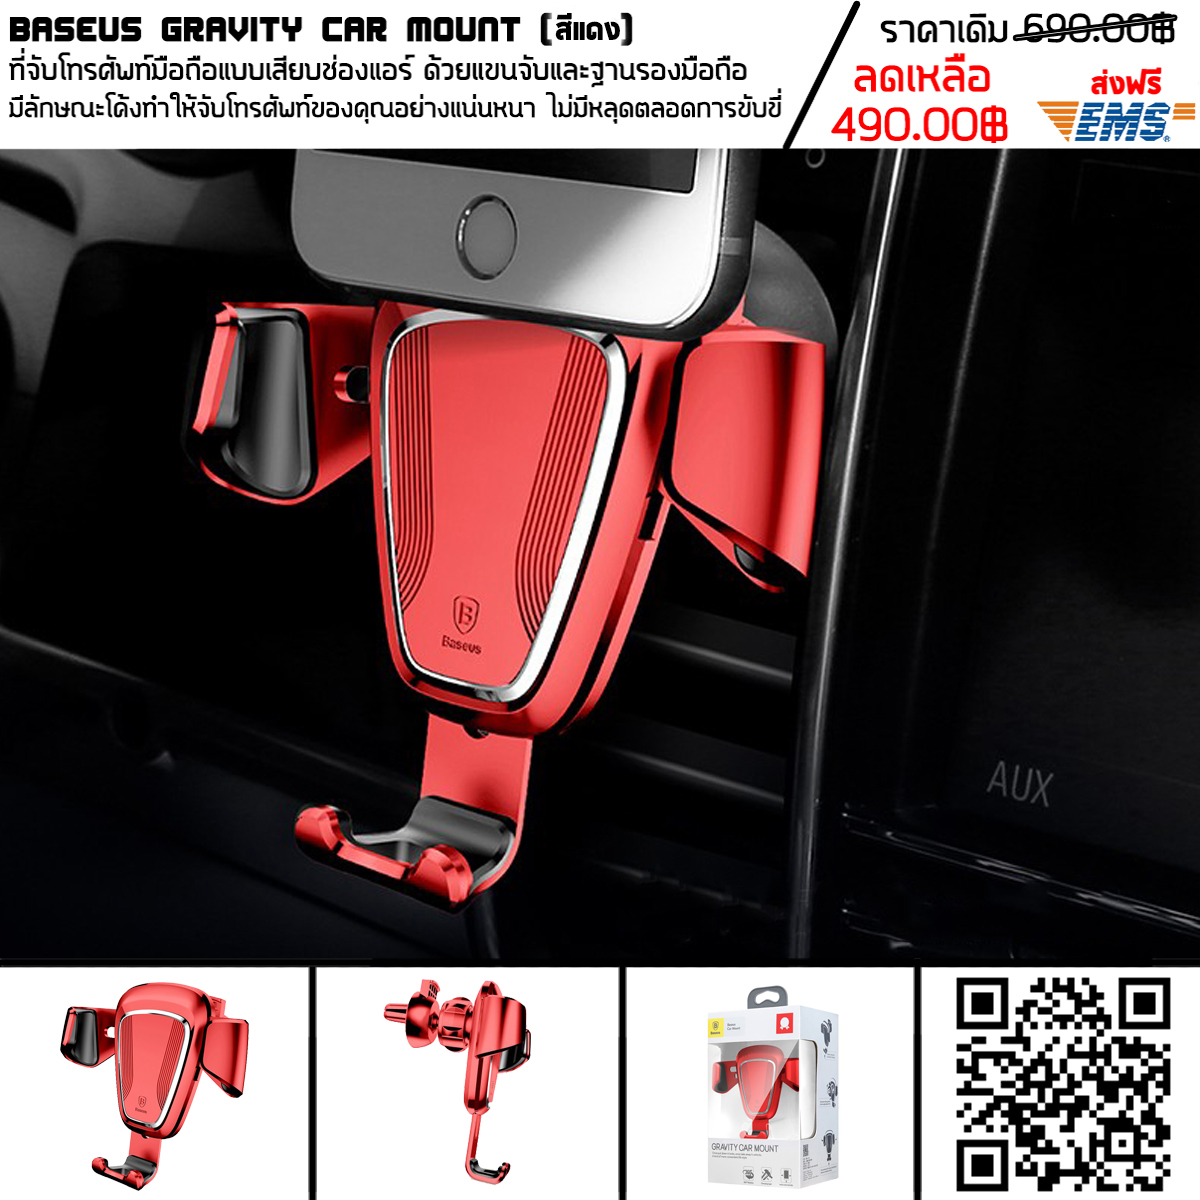 Baseus Gravity Car Mount (สีแดง)